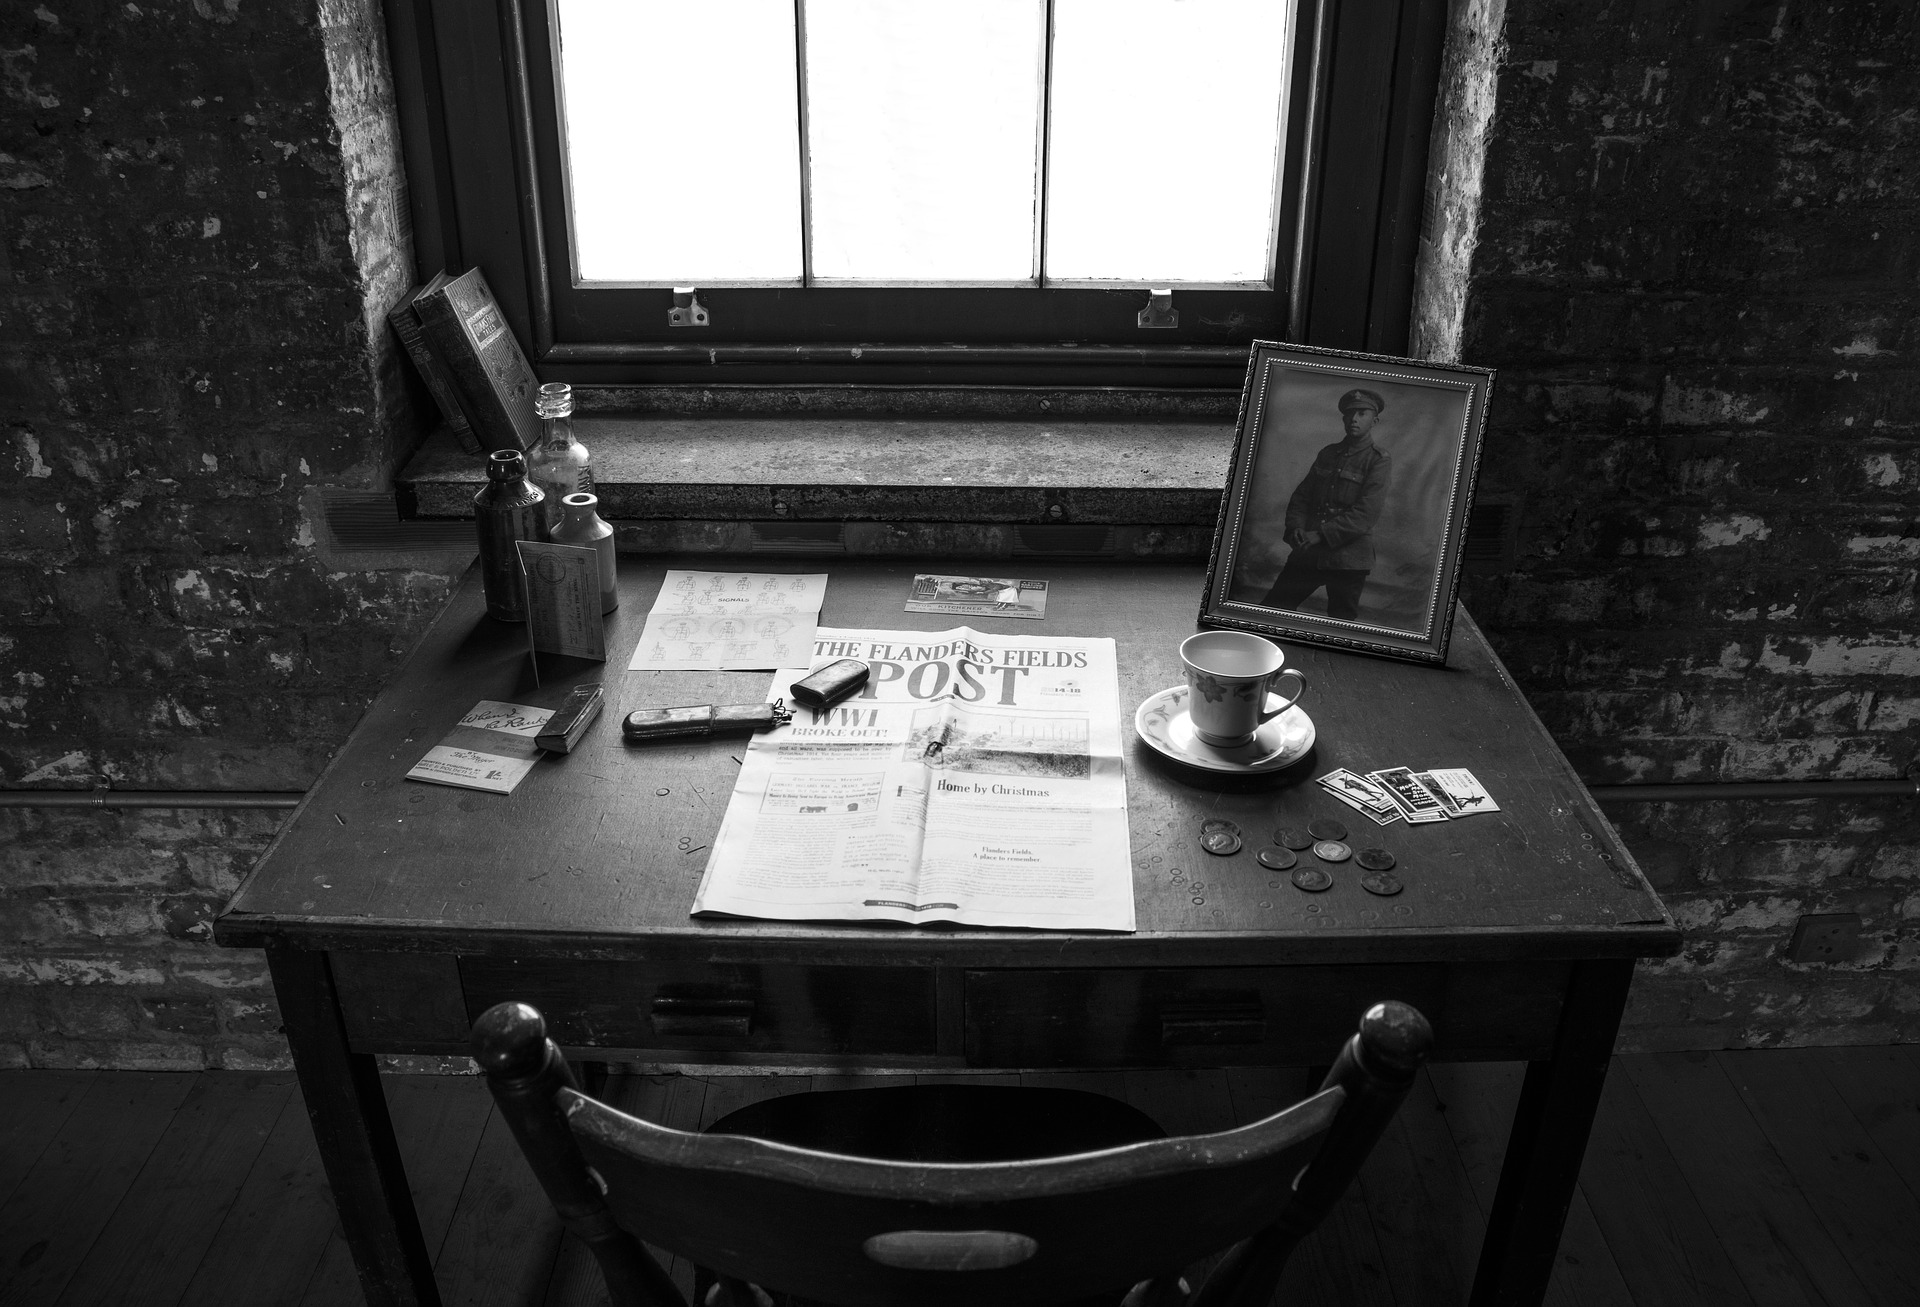 Desk with World War 1 artifacts. Remembrance and lest we forget.